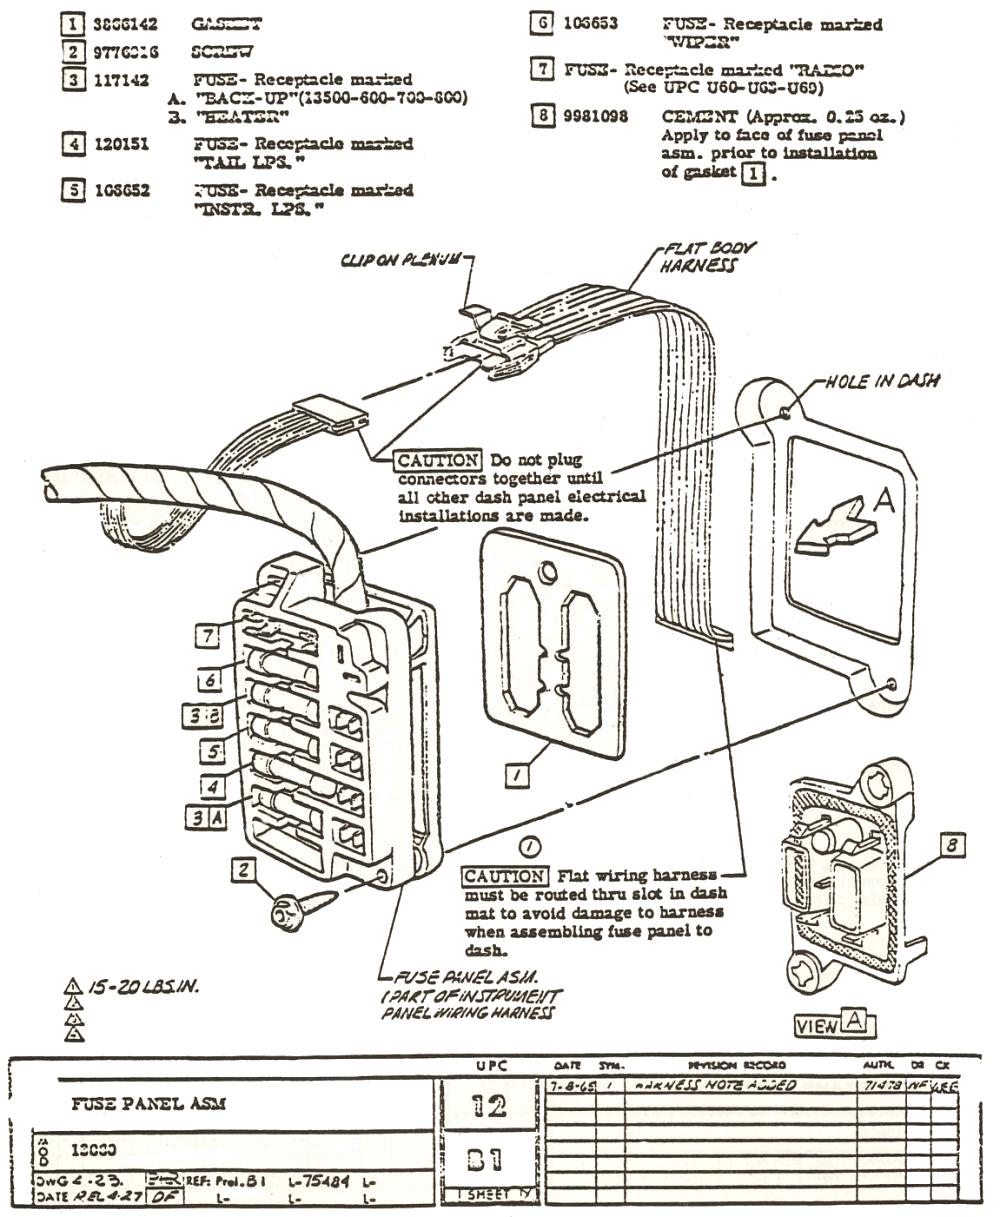 Vw Vanagon Fuse Diagram Engine And Wiring Volkswagen Eurovan Box Fan Switch Likewise 95 Cabrio Harness Also 1990 Gti